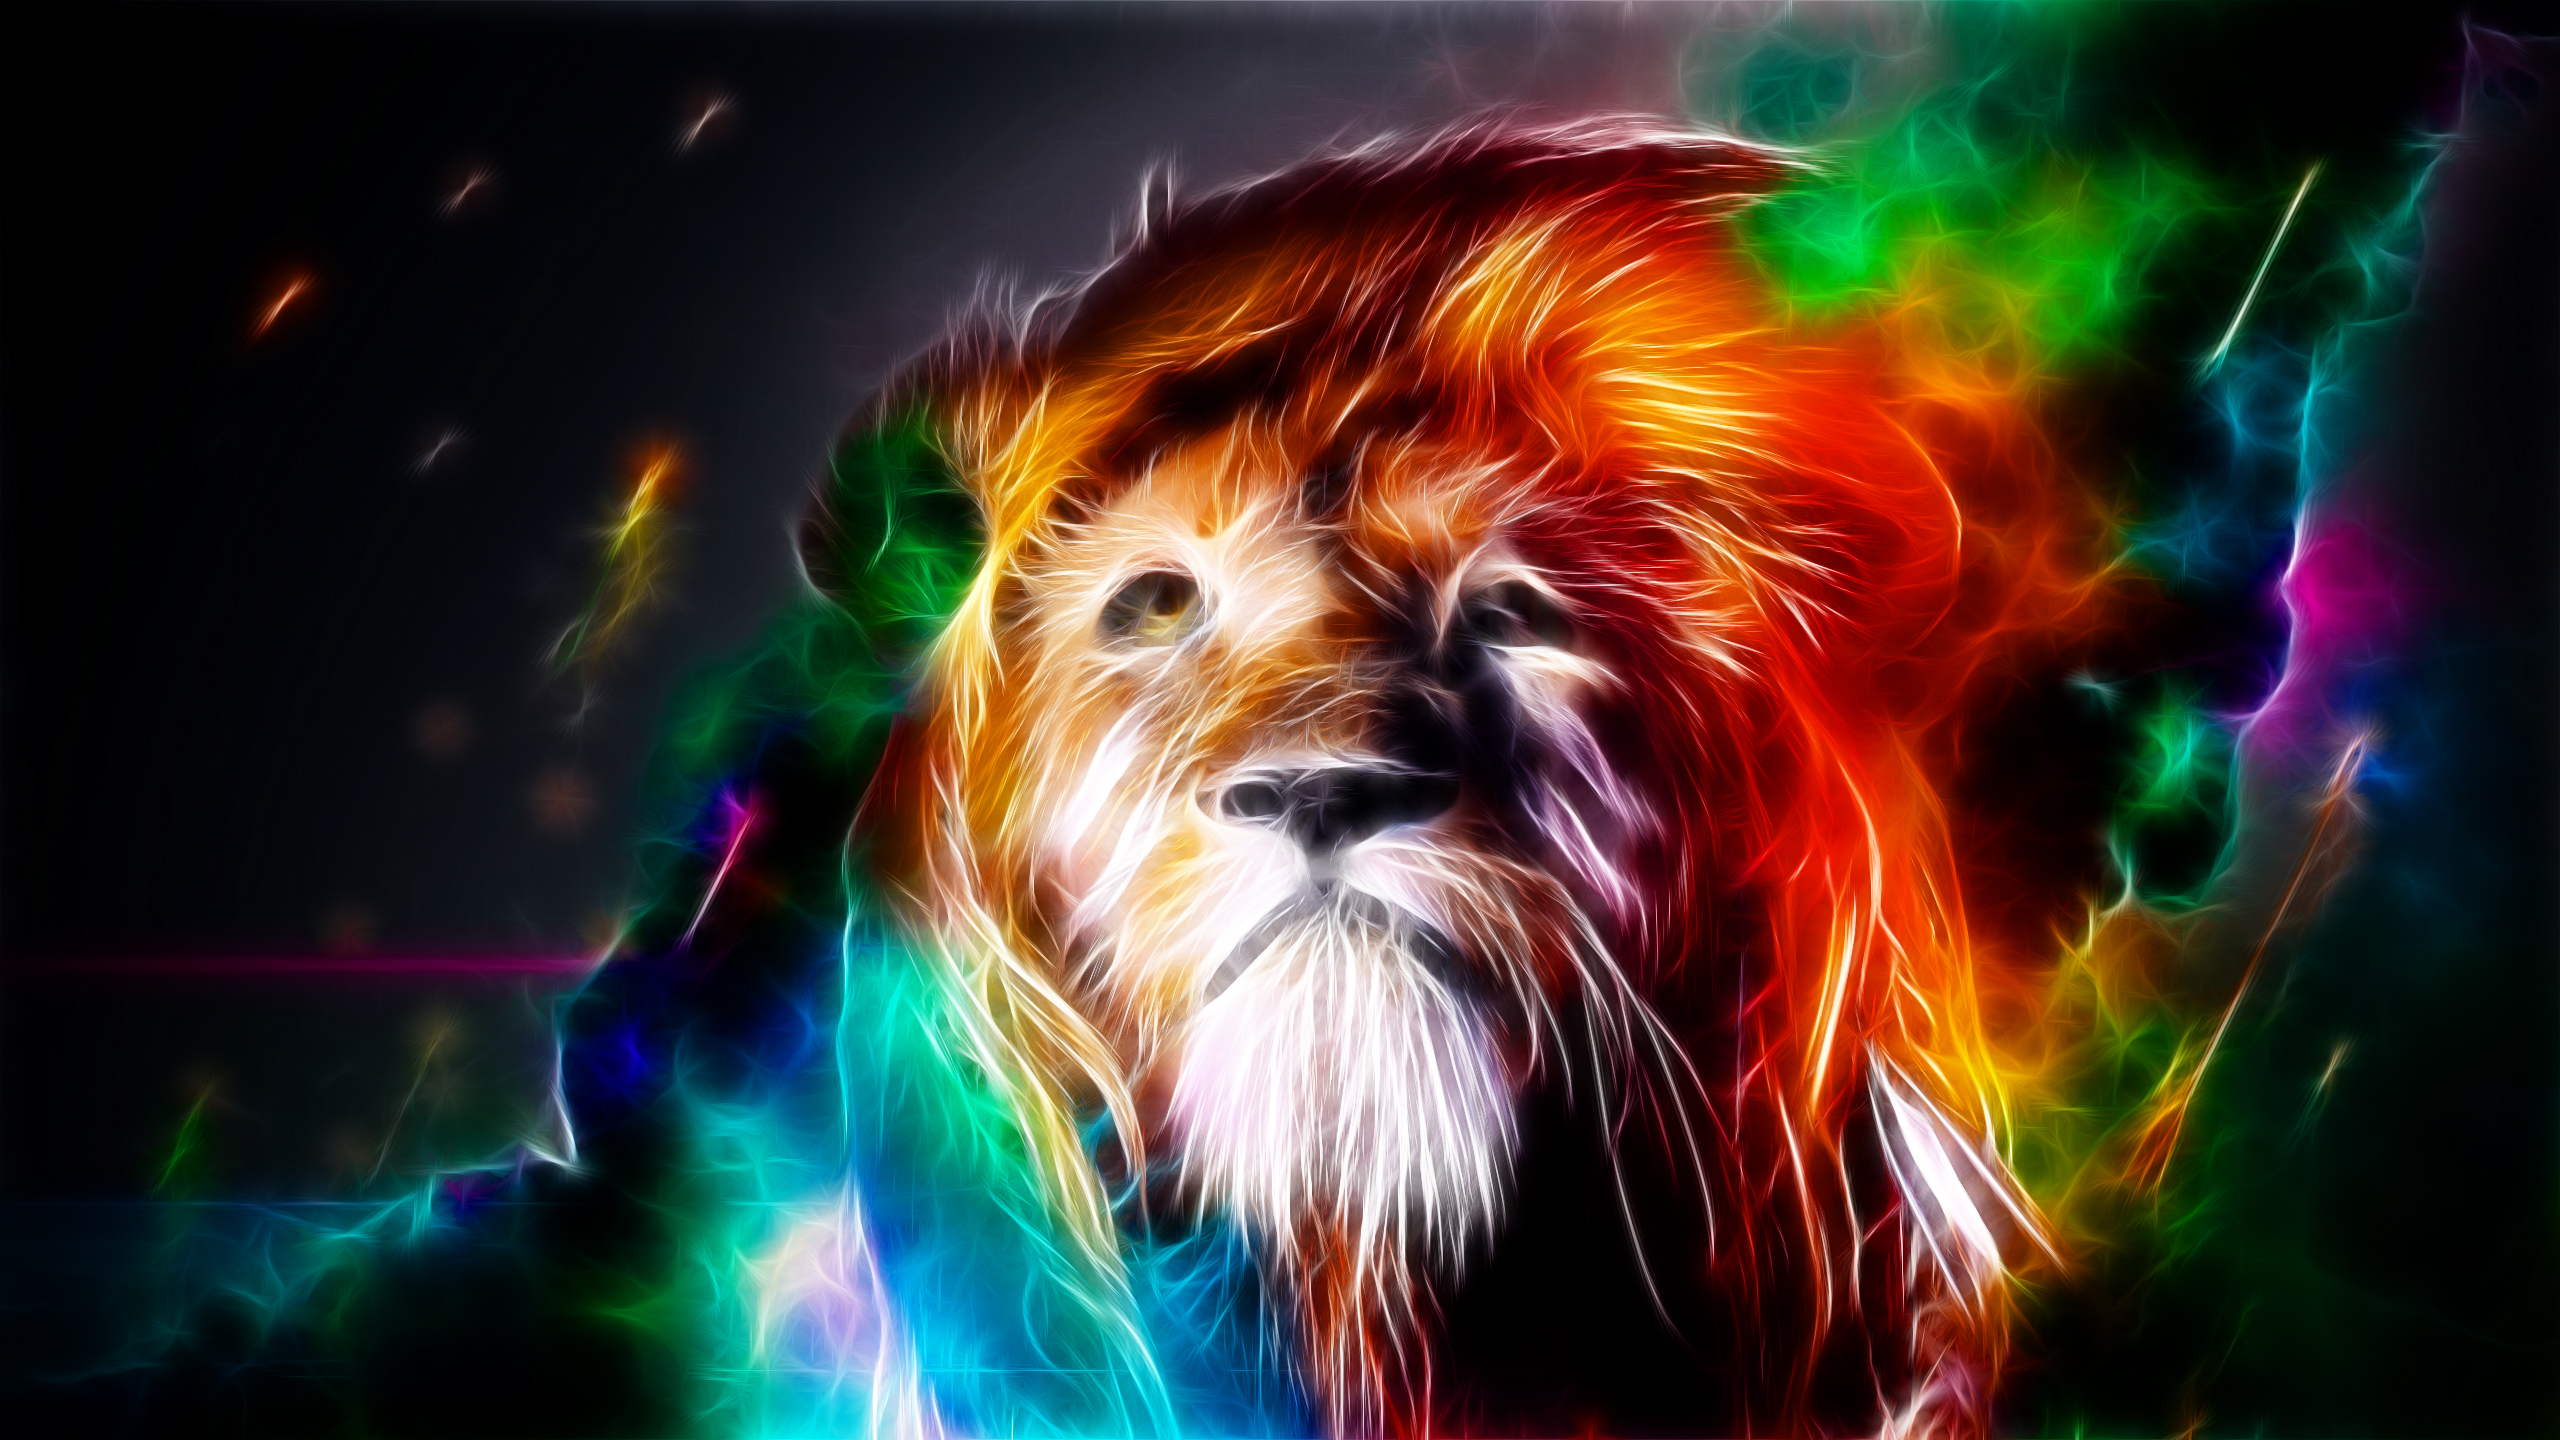 10 Latest Cool Wallpapers Of Animals Full Hd 1080p For Pc: Trippy Lion Wallpaper